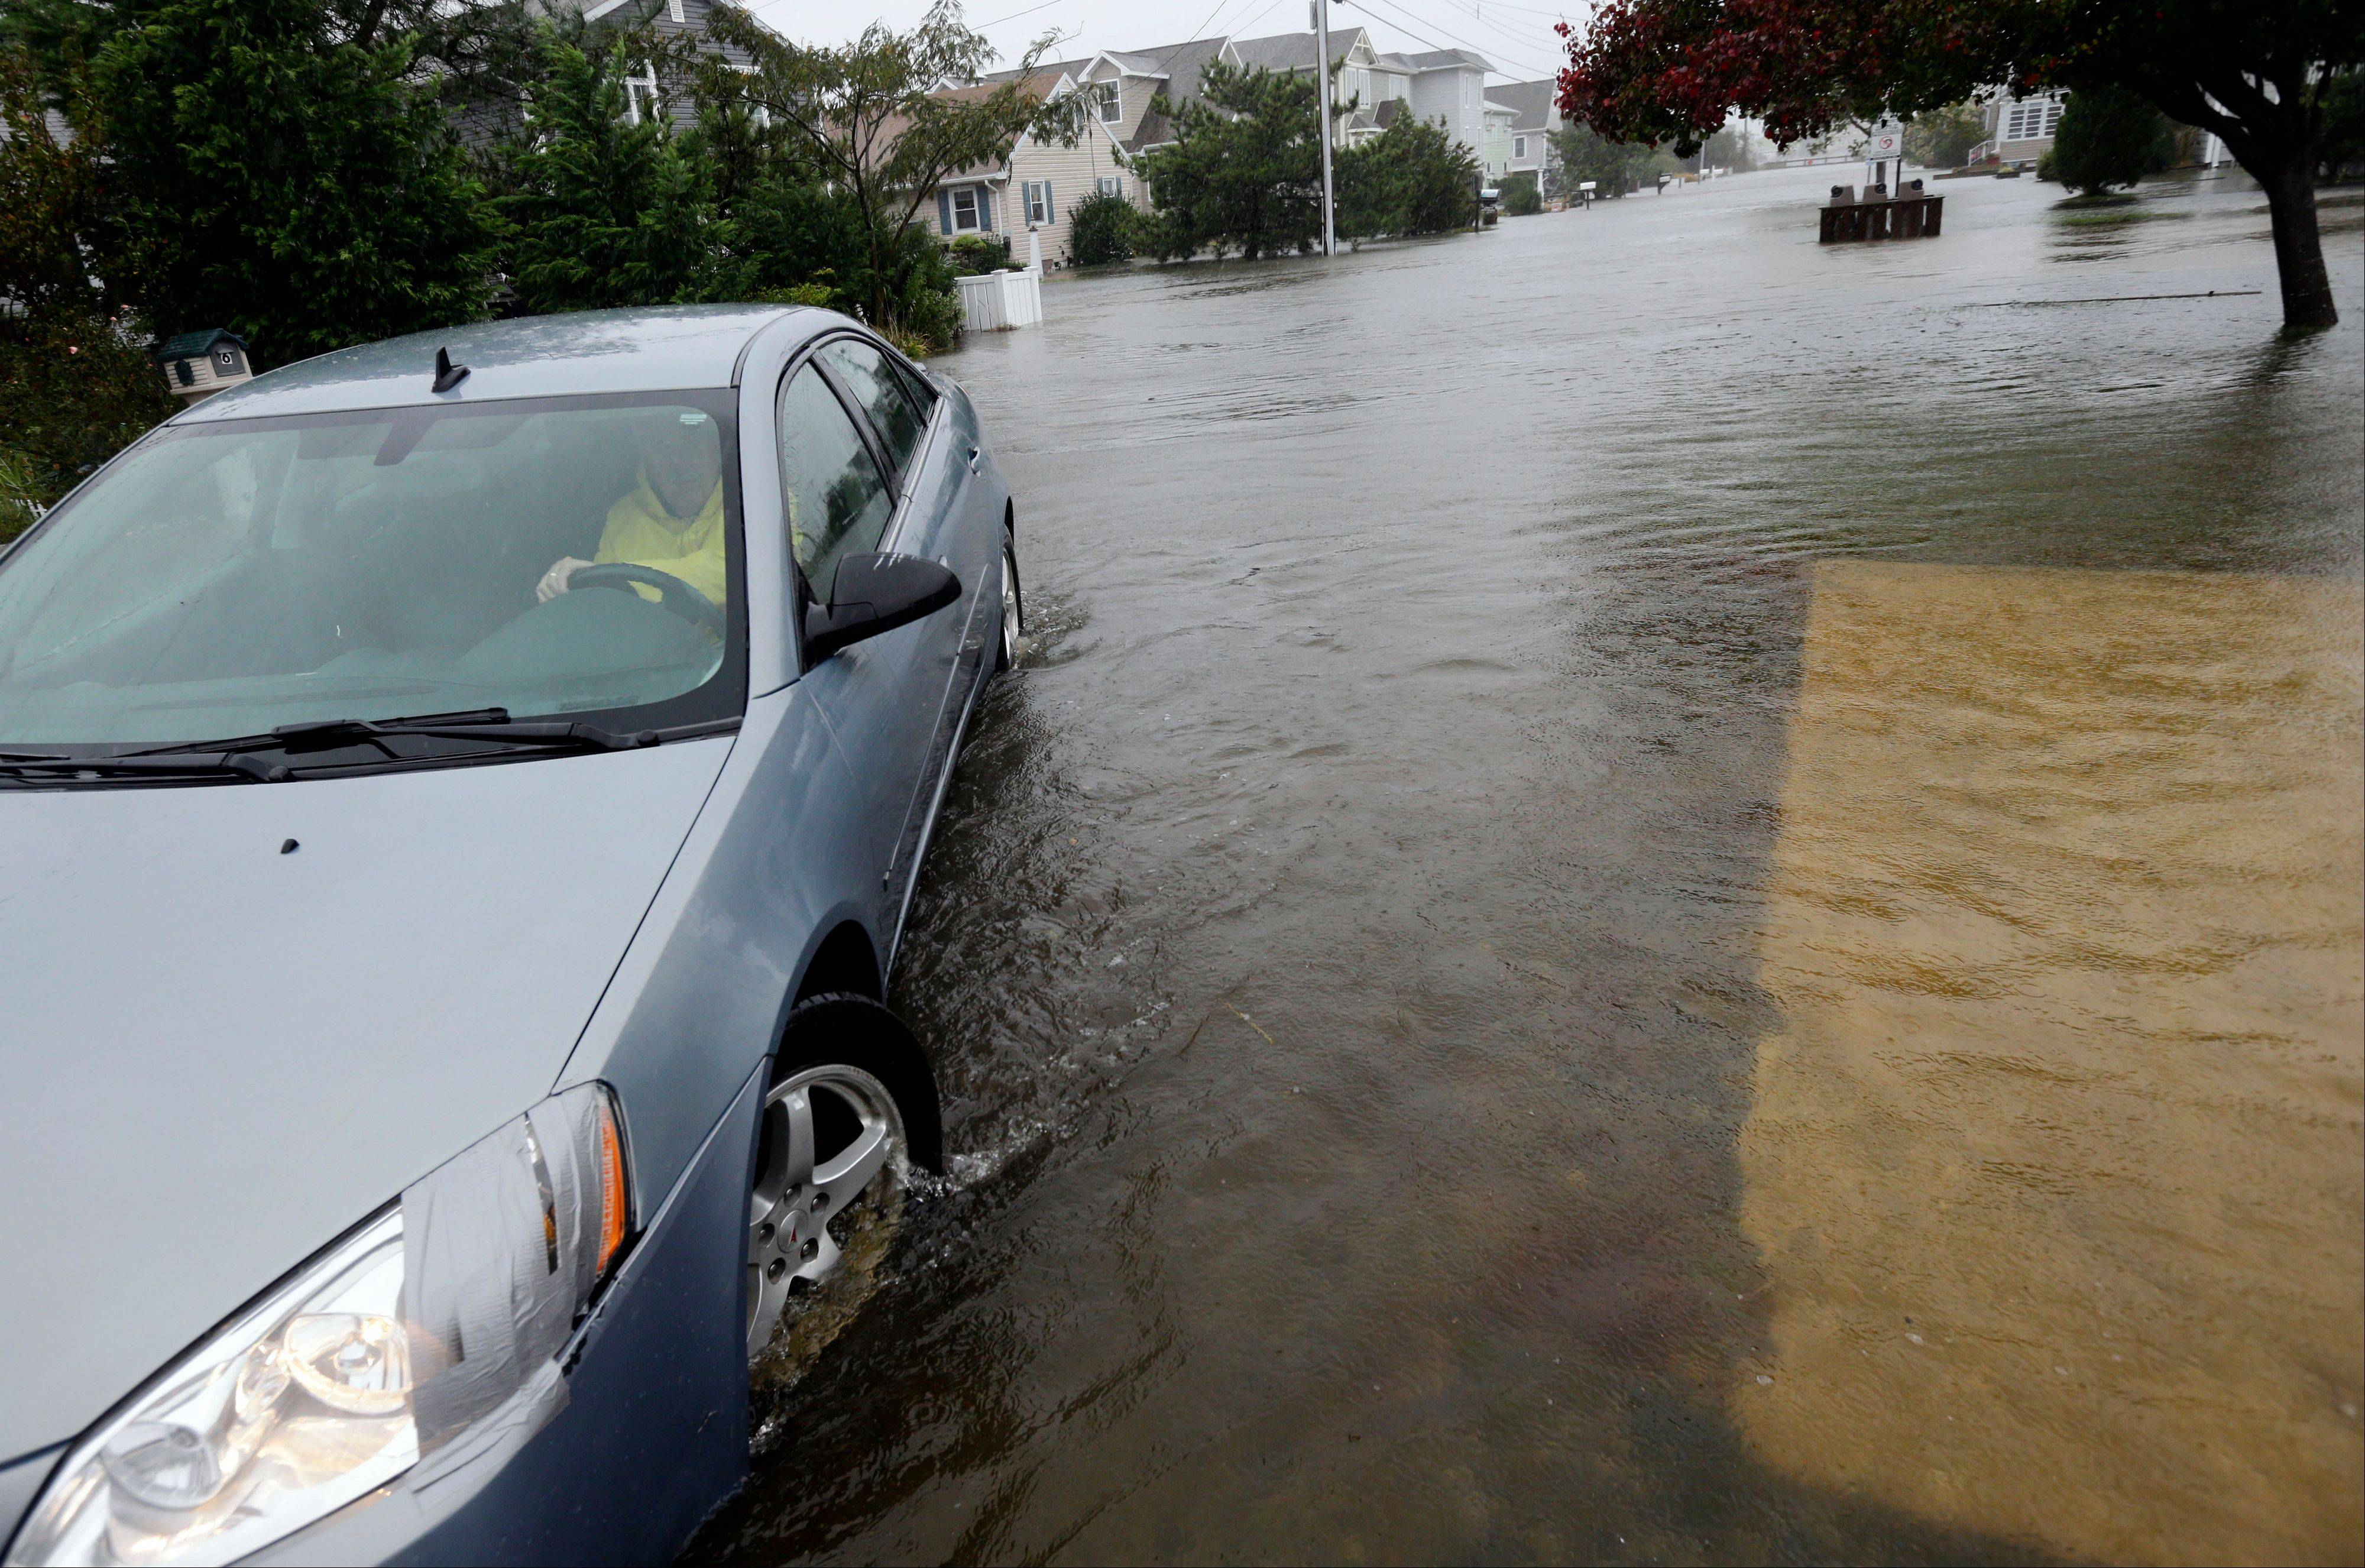 Richard Thomas moves a neighbors' car out of the rising water as Hurricane Sandy bears down on the East Coast in Fenwick Island, Del.